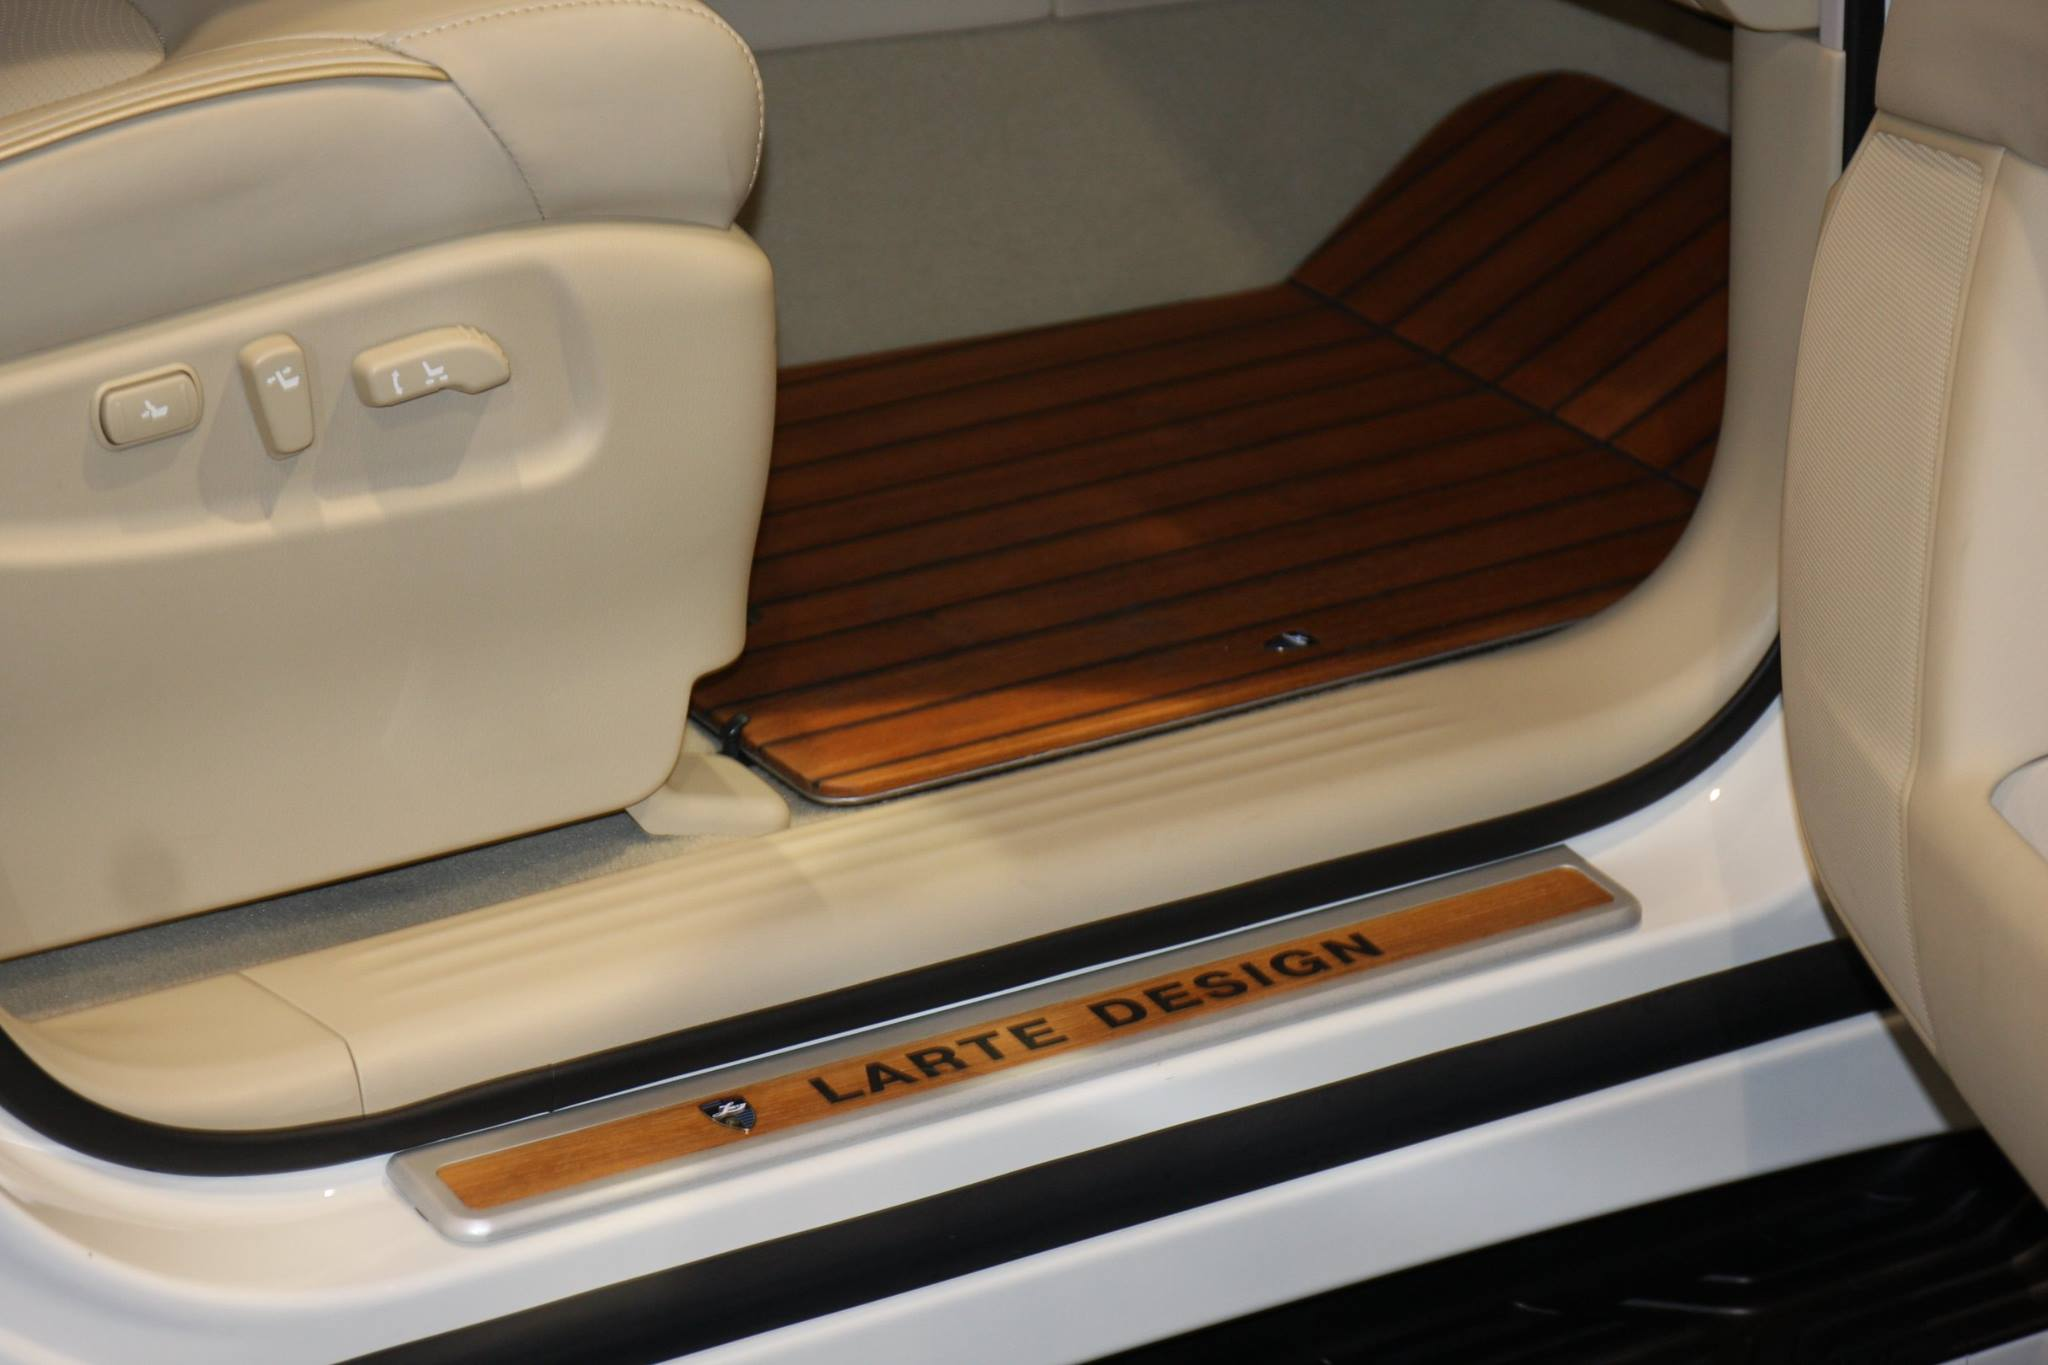 infiniti qx80 interior gets decked in teak wood trim autoevolution. Black Bedroom Furniture Sets. Home Design Ideas